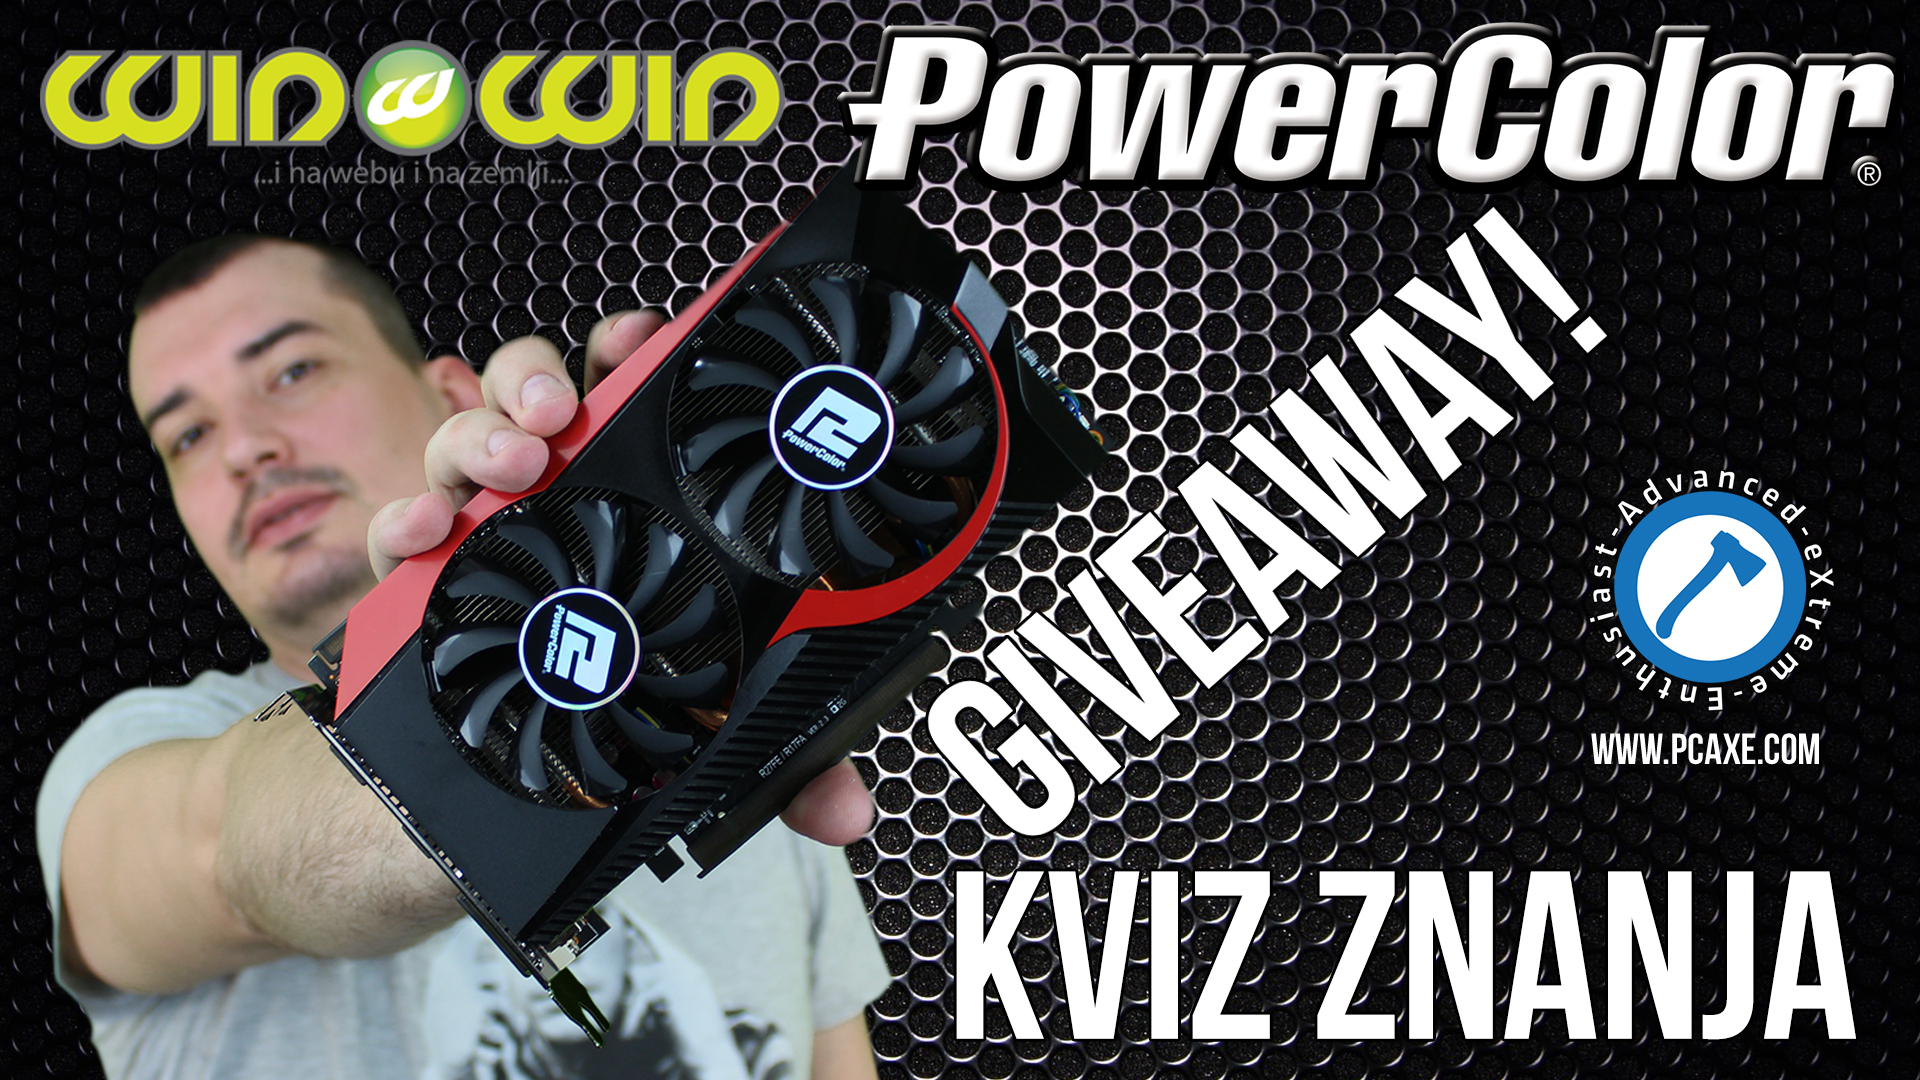 giveaway blogs powercolor giveaway kviz znanja winwin blog 283